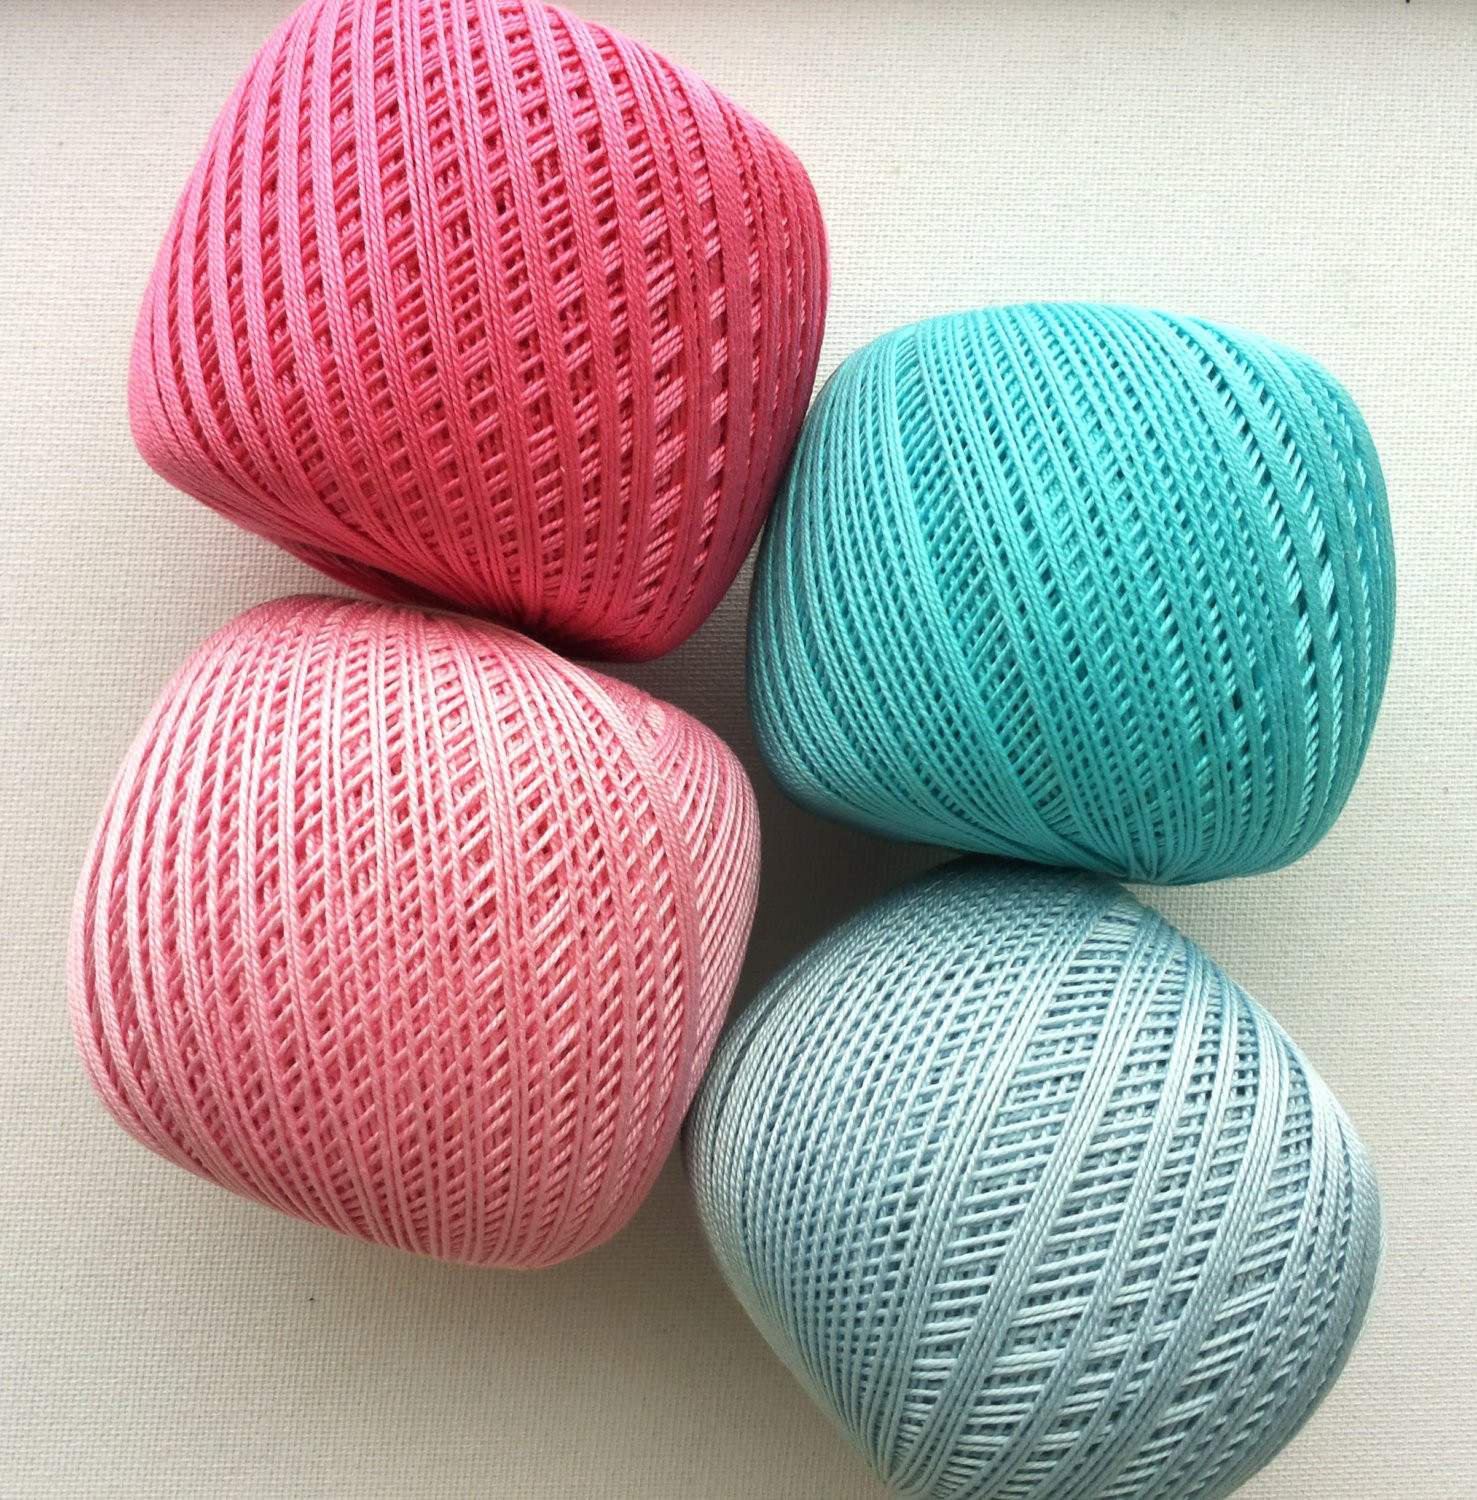 Size 10 Crochet Thread Fresh Crochet Cotton Yarn 10 Size 10 Thread 3 Ply Cotton Yarn Of Luxury 49 Models Size 10 Crochet Thread